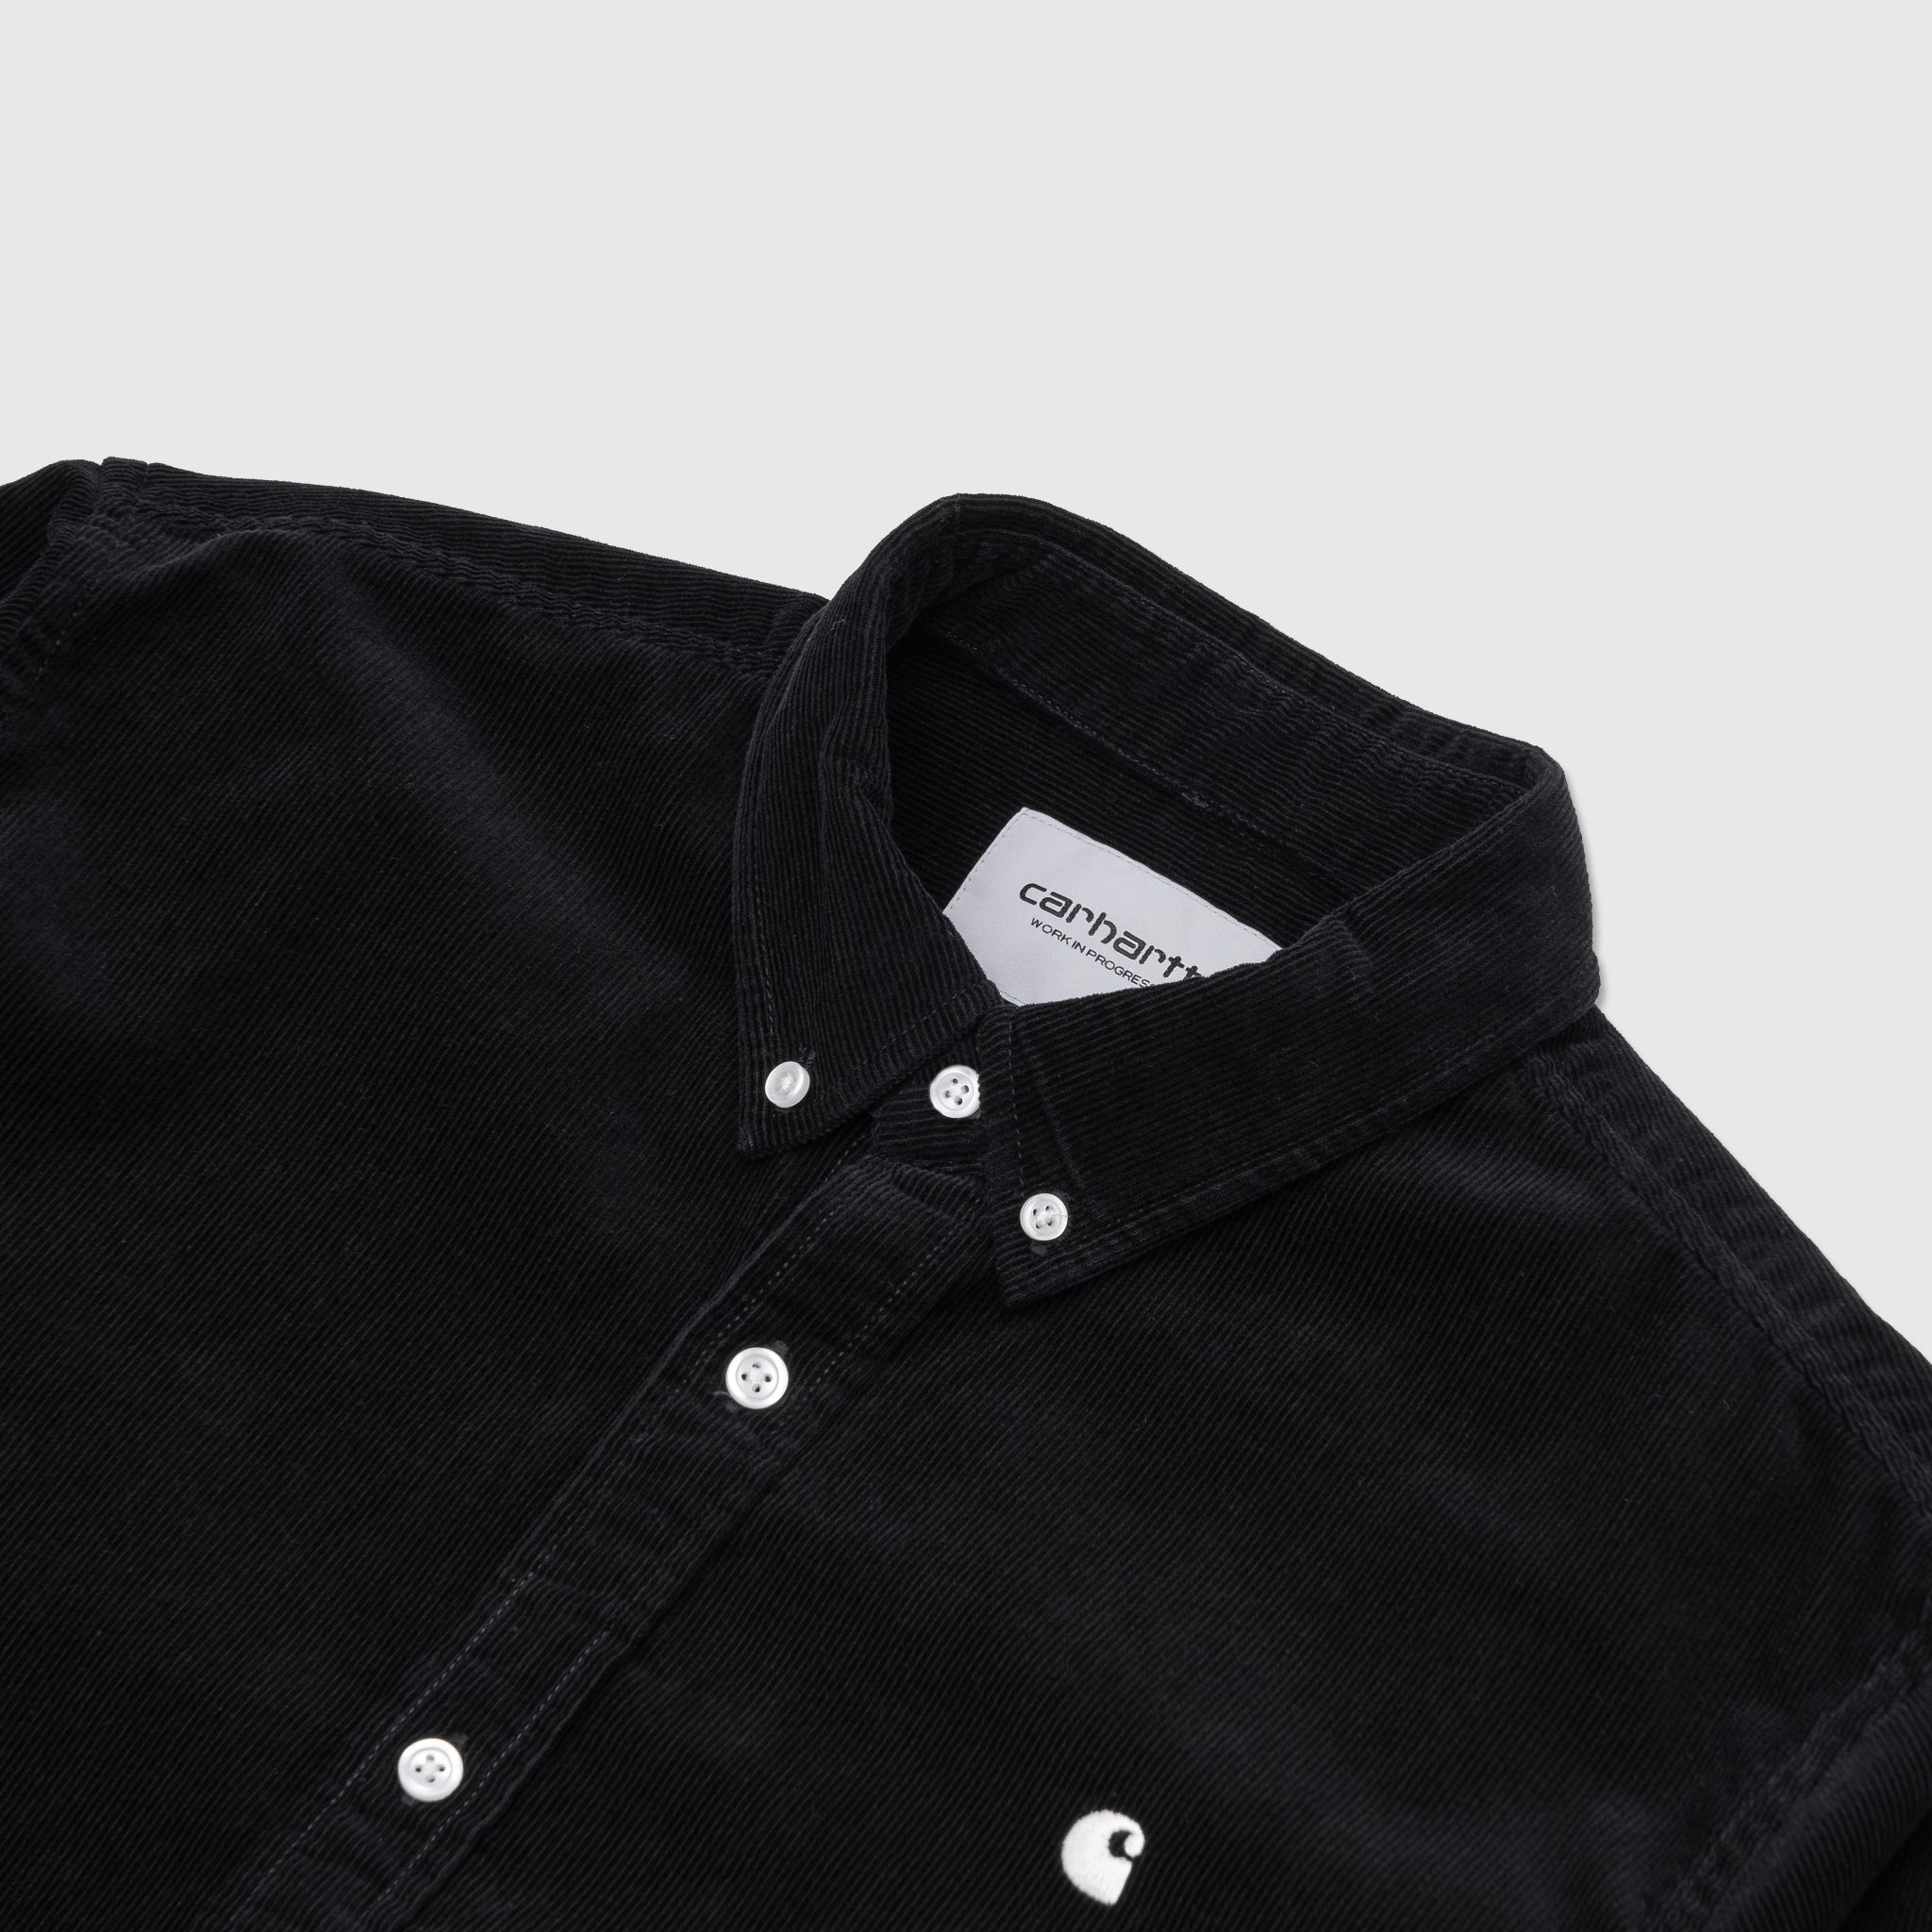 CARHARTT WIP MADISON CORD L/S SHIRT